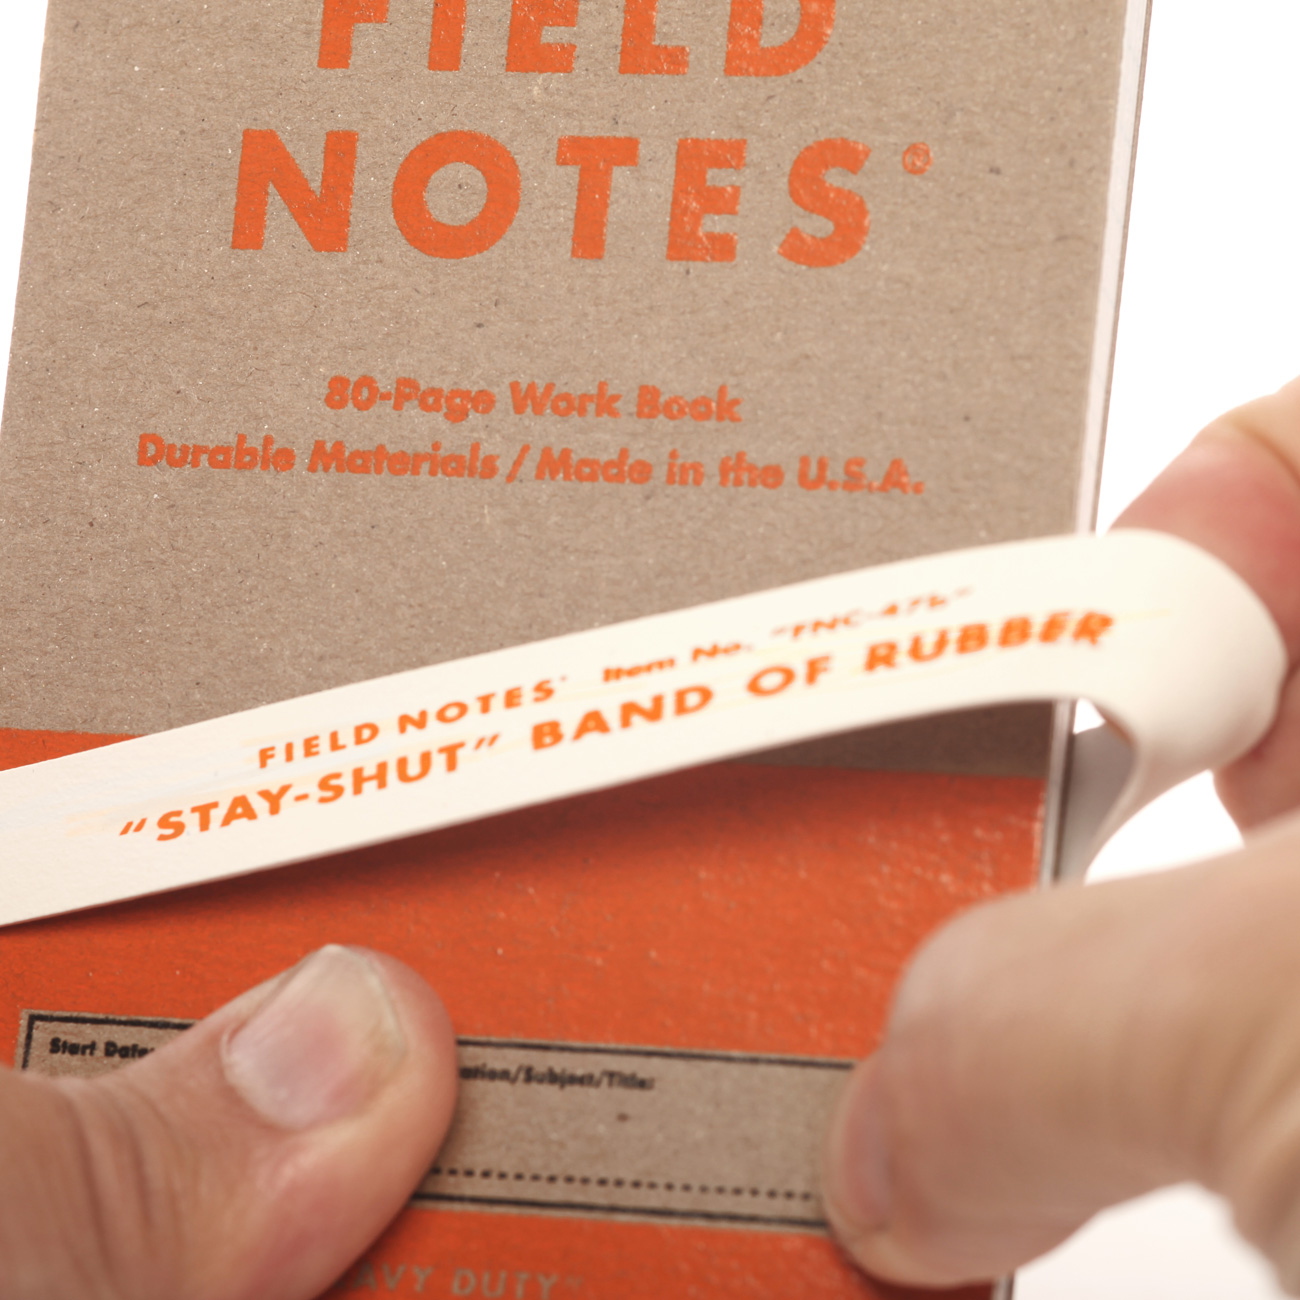 Field Notes, Heavy Duty, StayShut Gummiband, weiß,